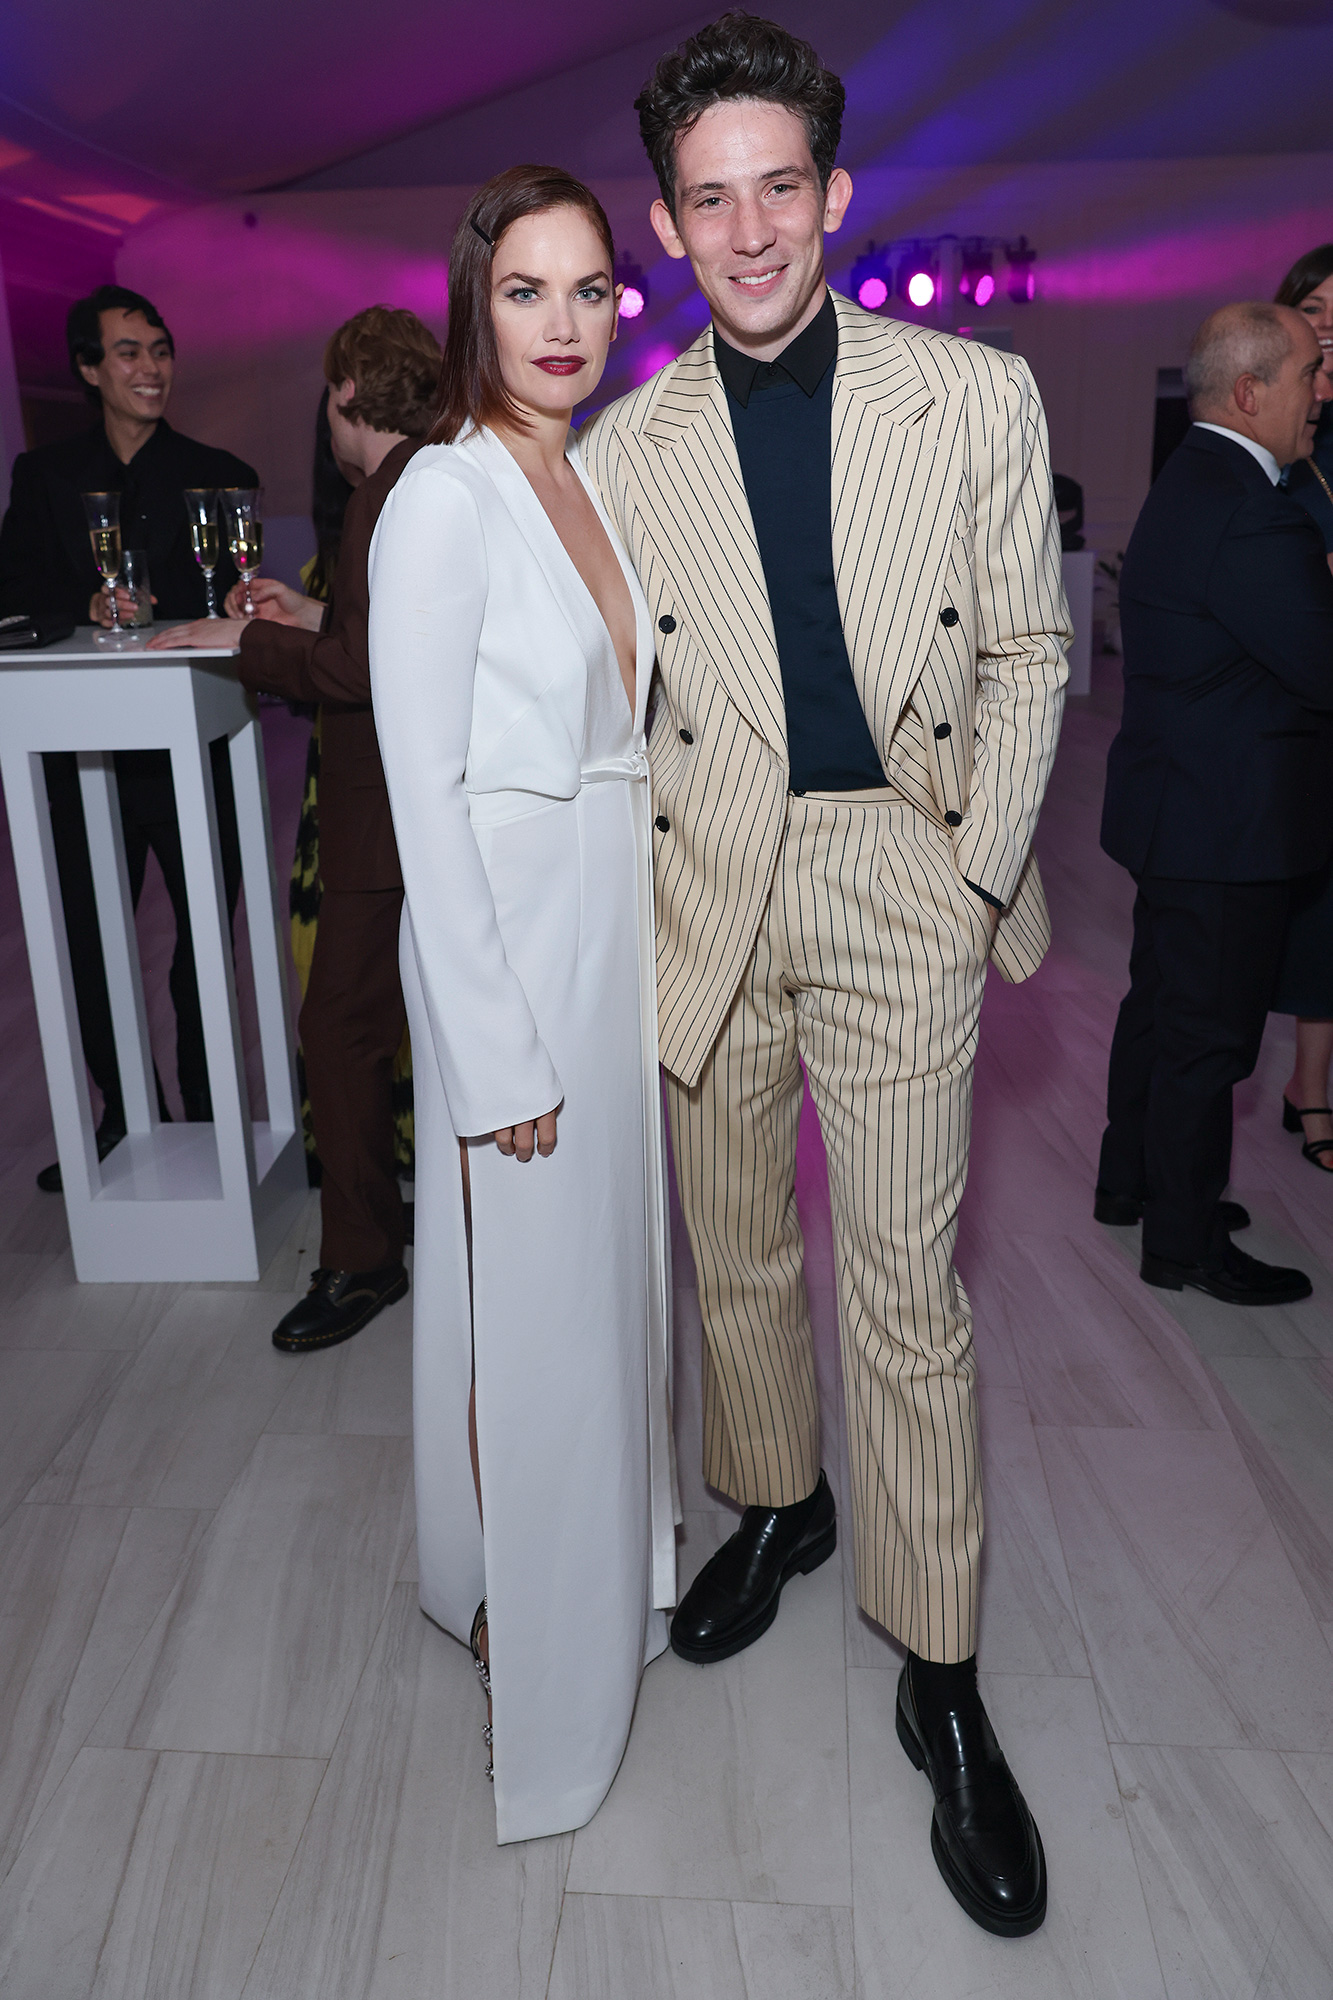 Ruth Wilson and Josh O'Connor attend the BVLGARI High Jewellery Gala at Kensington Palace on October 12, 2021 in London, England